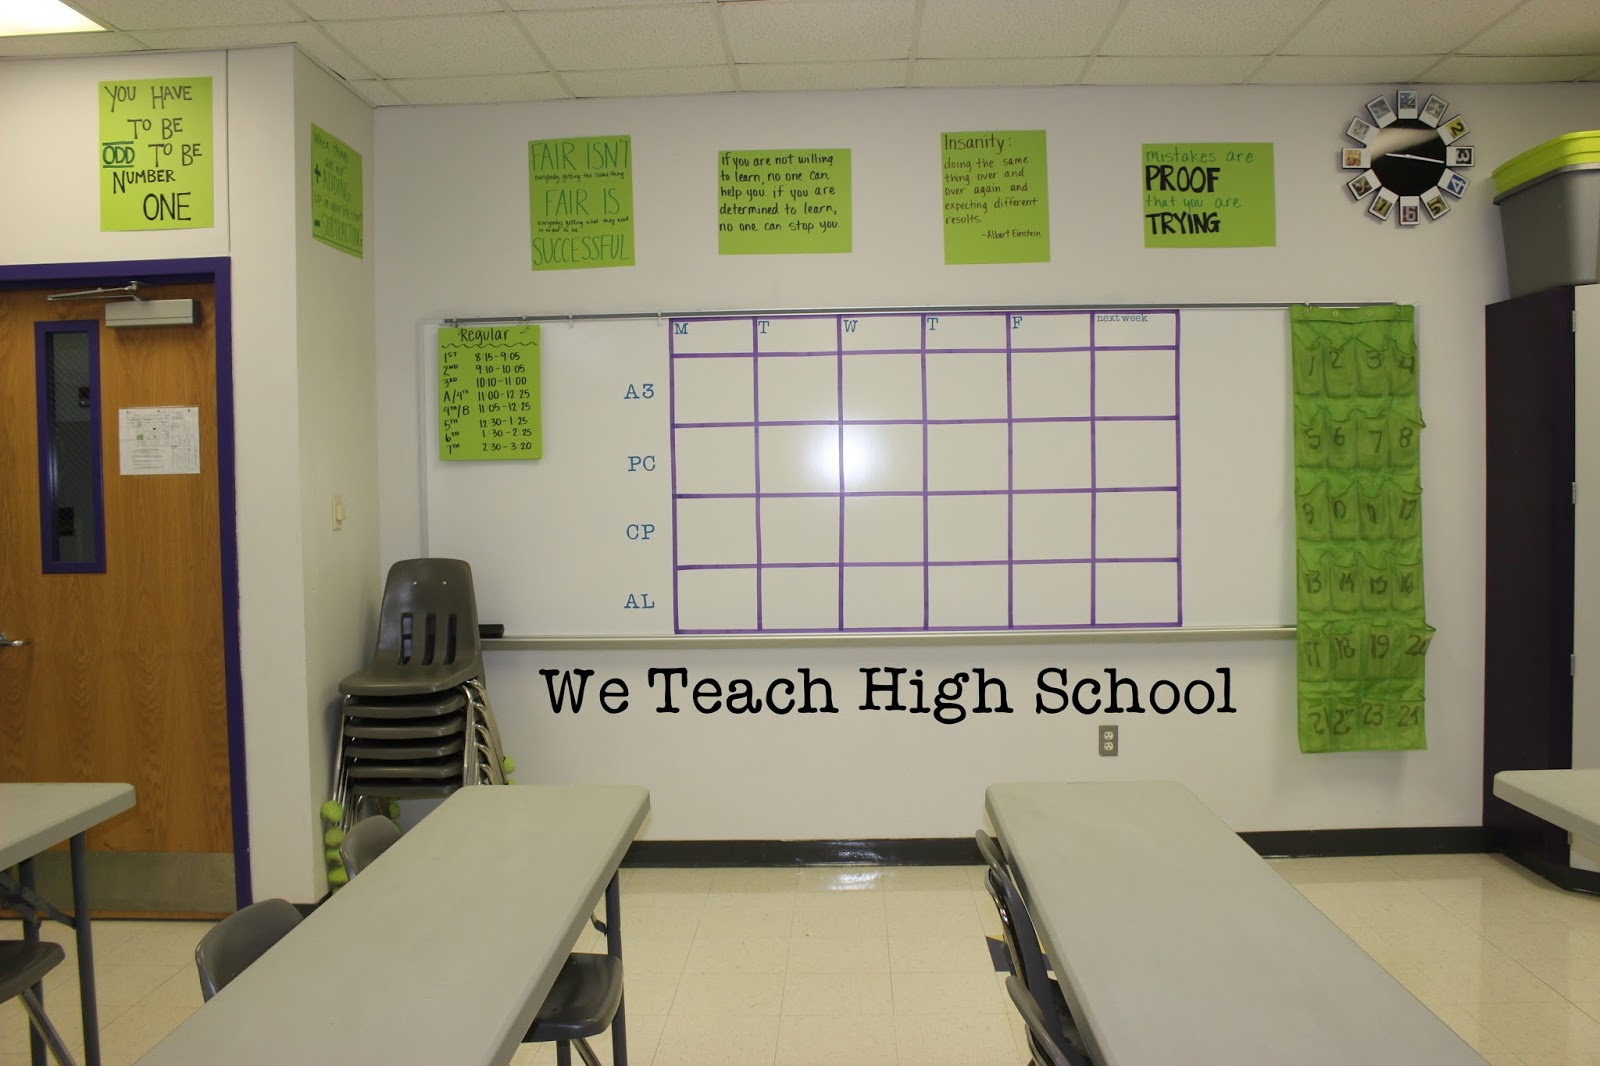 High School Math Classroom Design : We teach high school math classroom